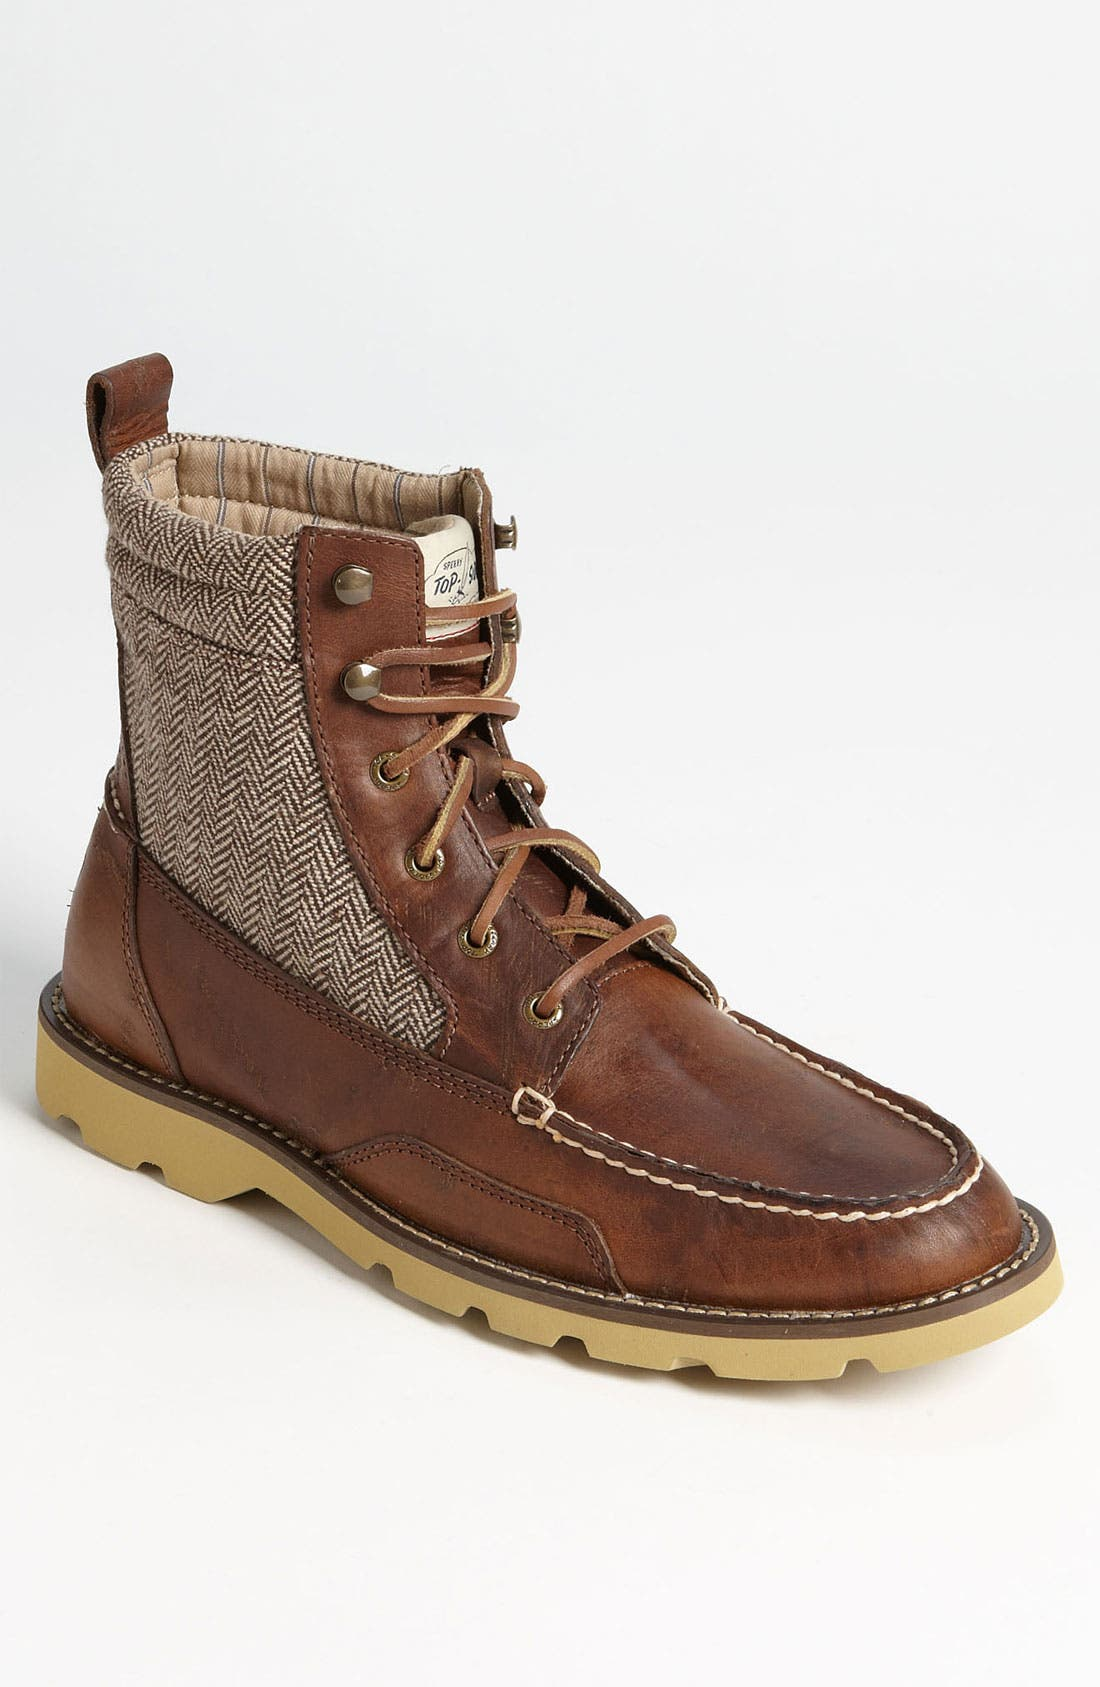 Alternate Image 1 Selected - Sperry Top-Sider® 'Shipyard' Moc Toe Boot